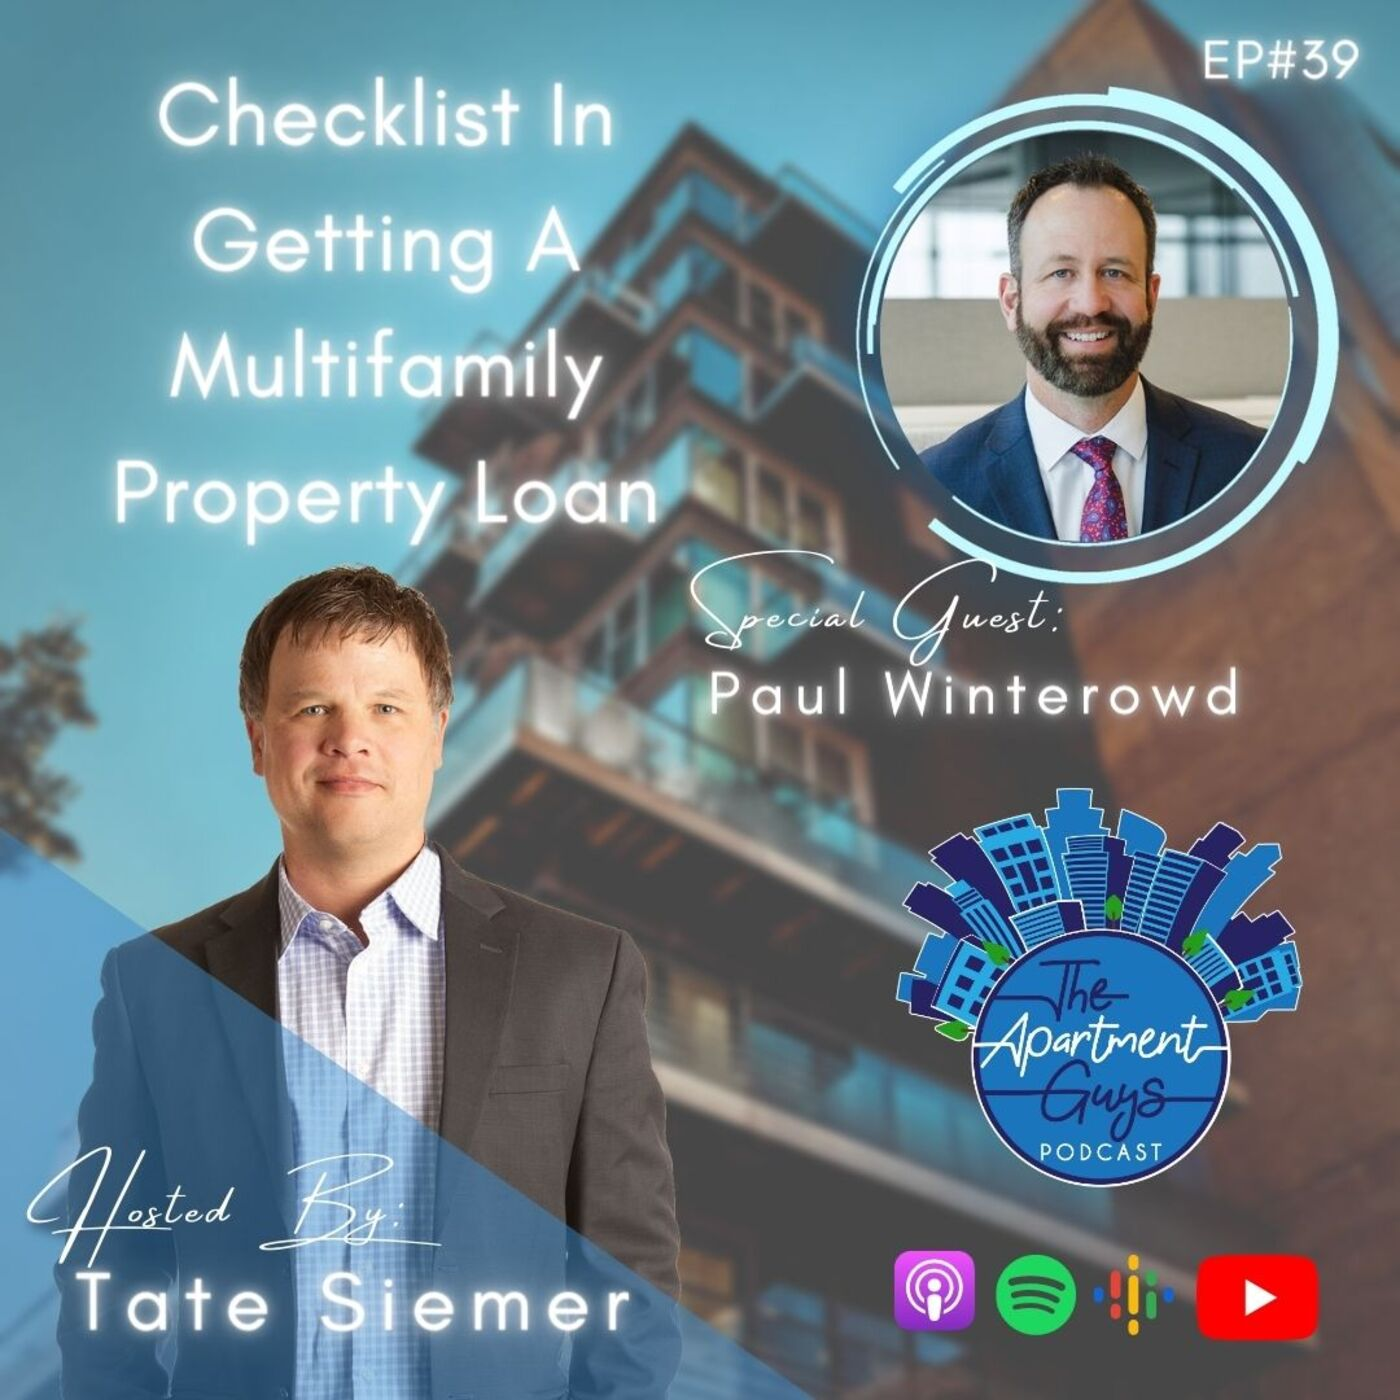 Episode 039: Paul Winterowd - Checklist In Getting A Multifamily Property Loan